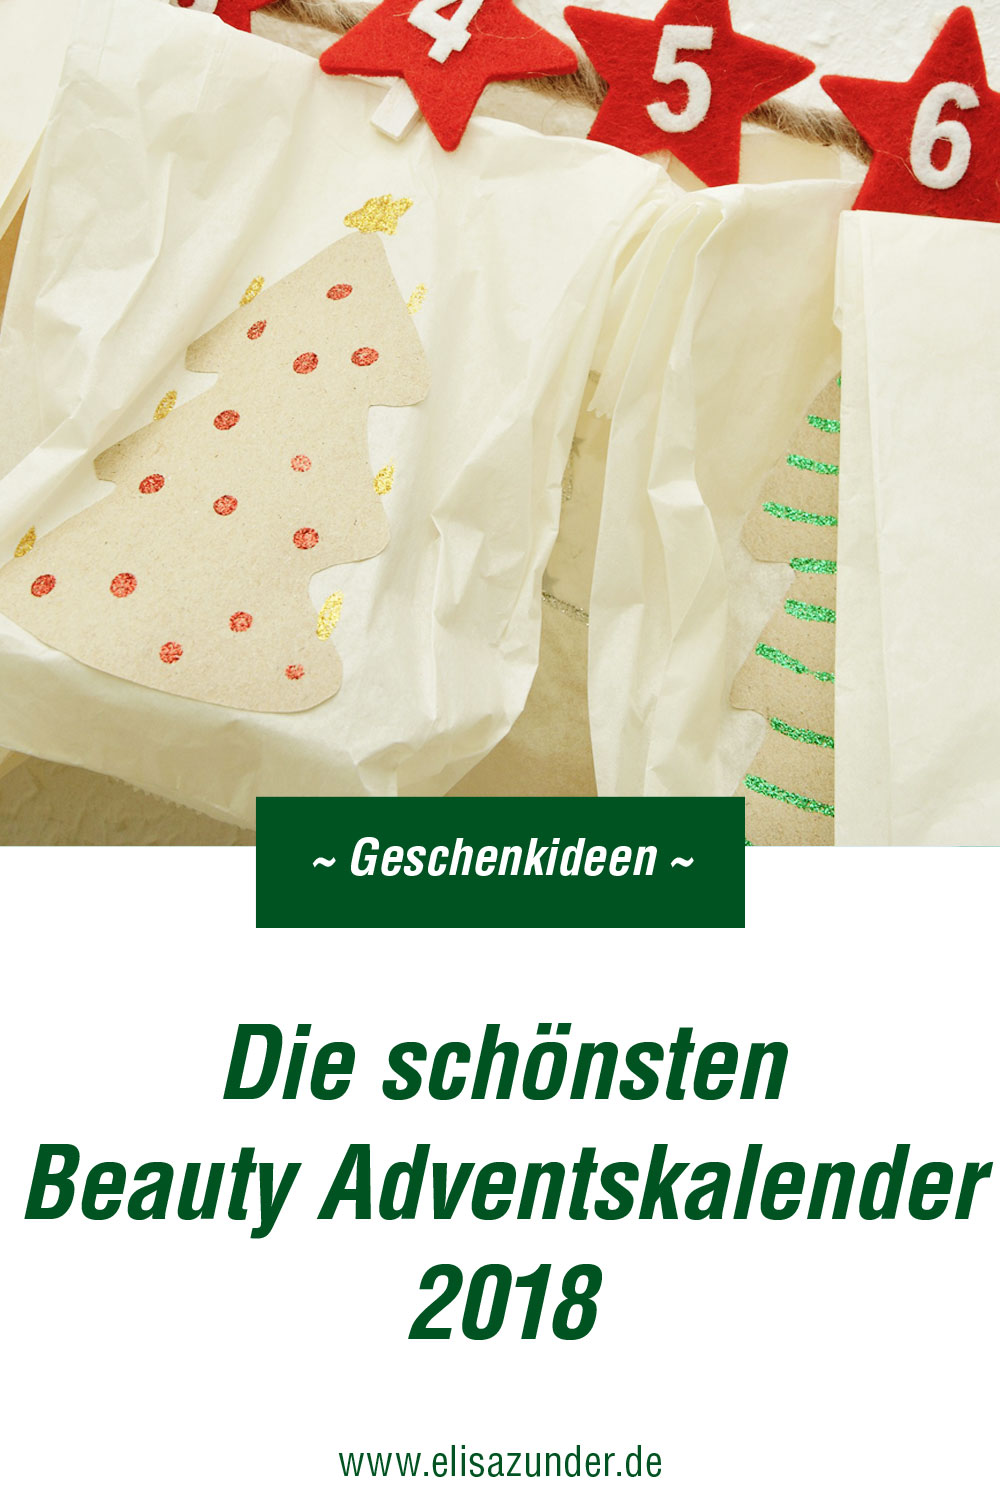 Beauty Adventskalender 2018, Die schönsten Beauty Adventskalender 2018, Advent, Geschenkideen, Adventskalender mit Beautyprodukten